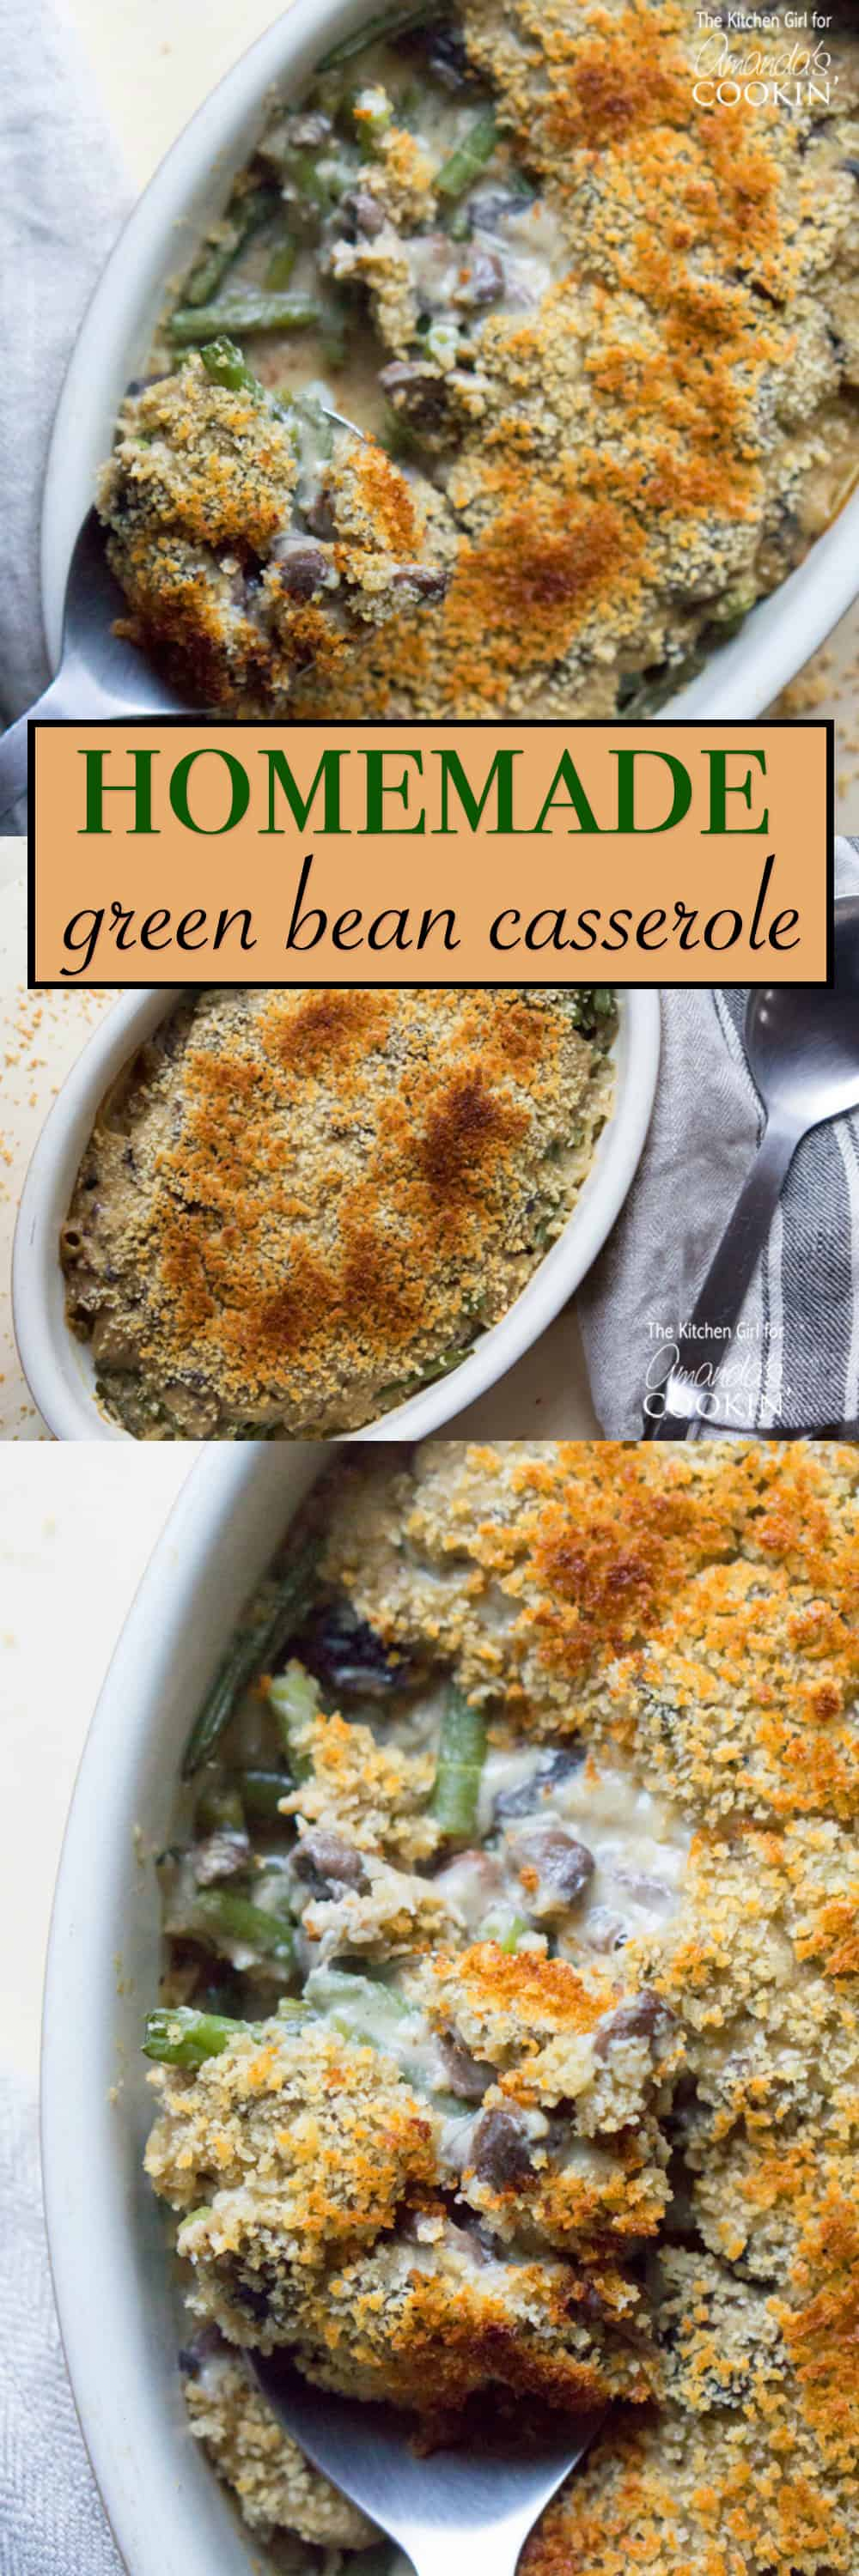 Everyone loves green bean casserole, but this year ditch the canned soup. Make this delicious homemade green bean casserole that everyone will love.